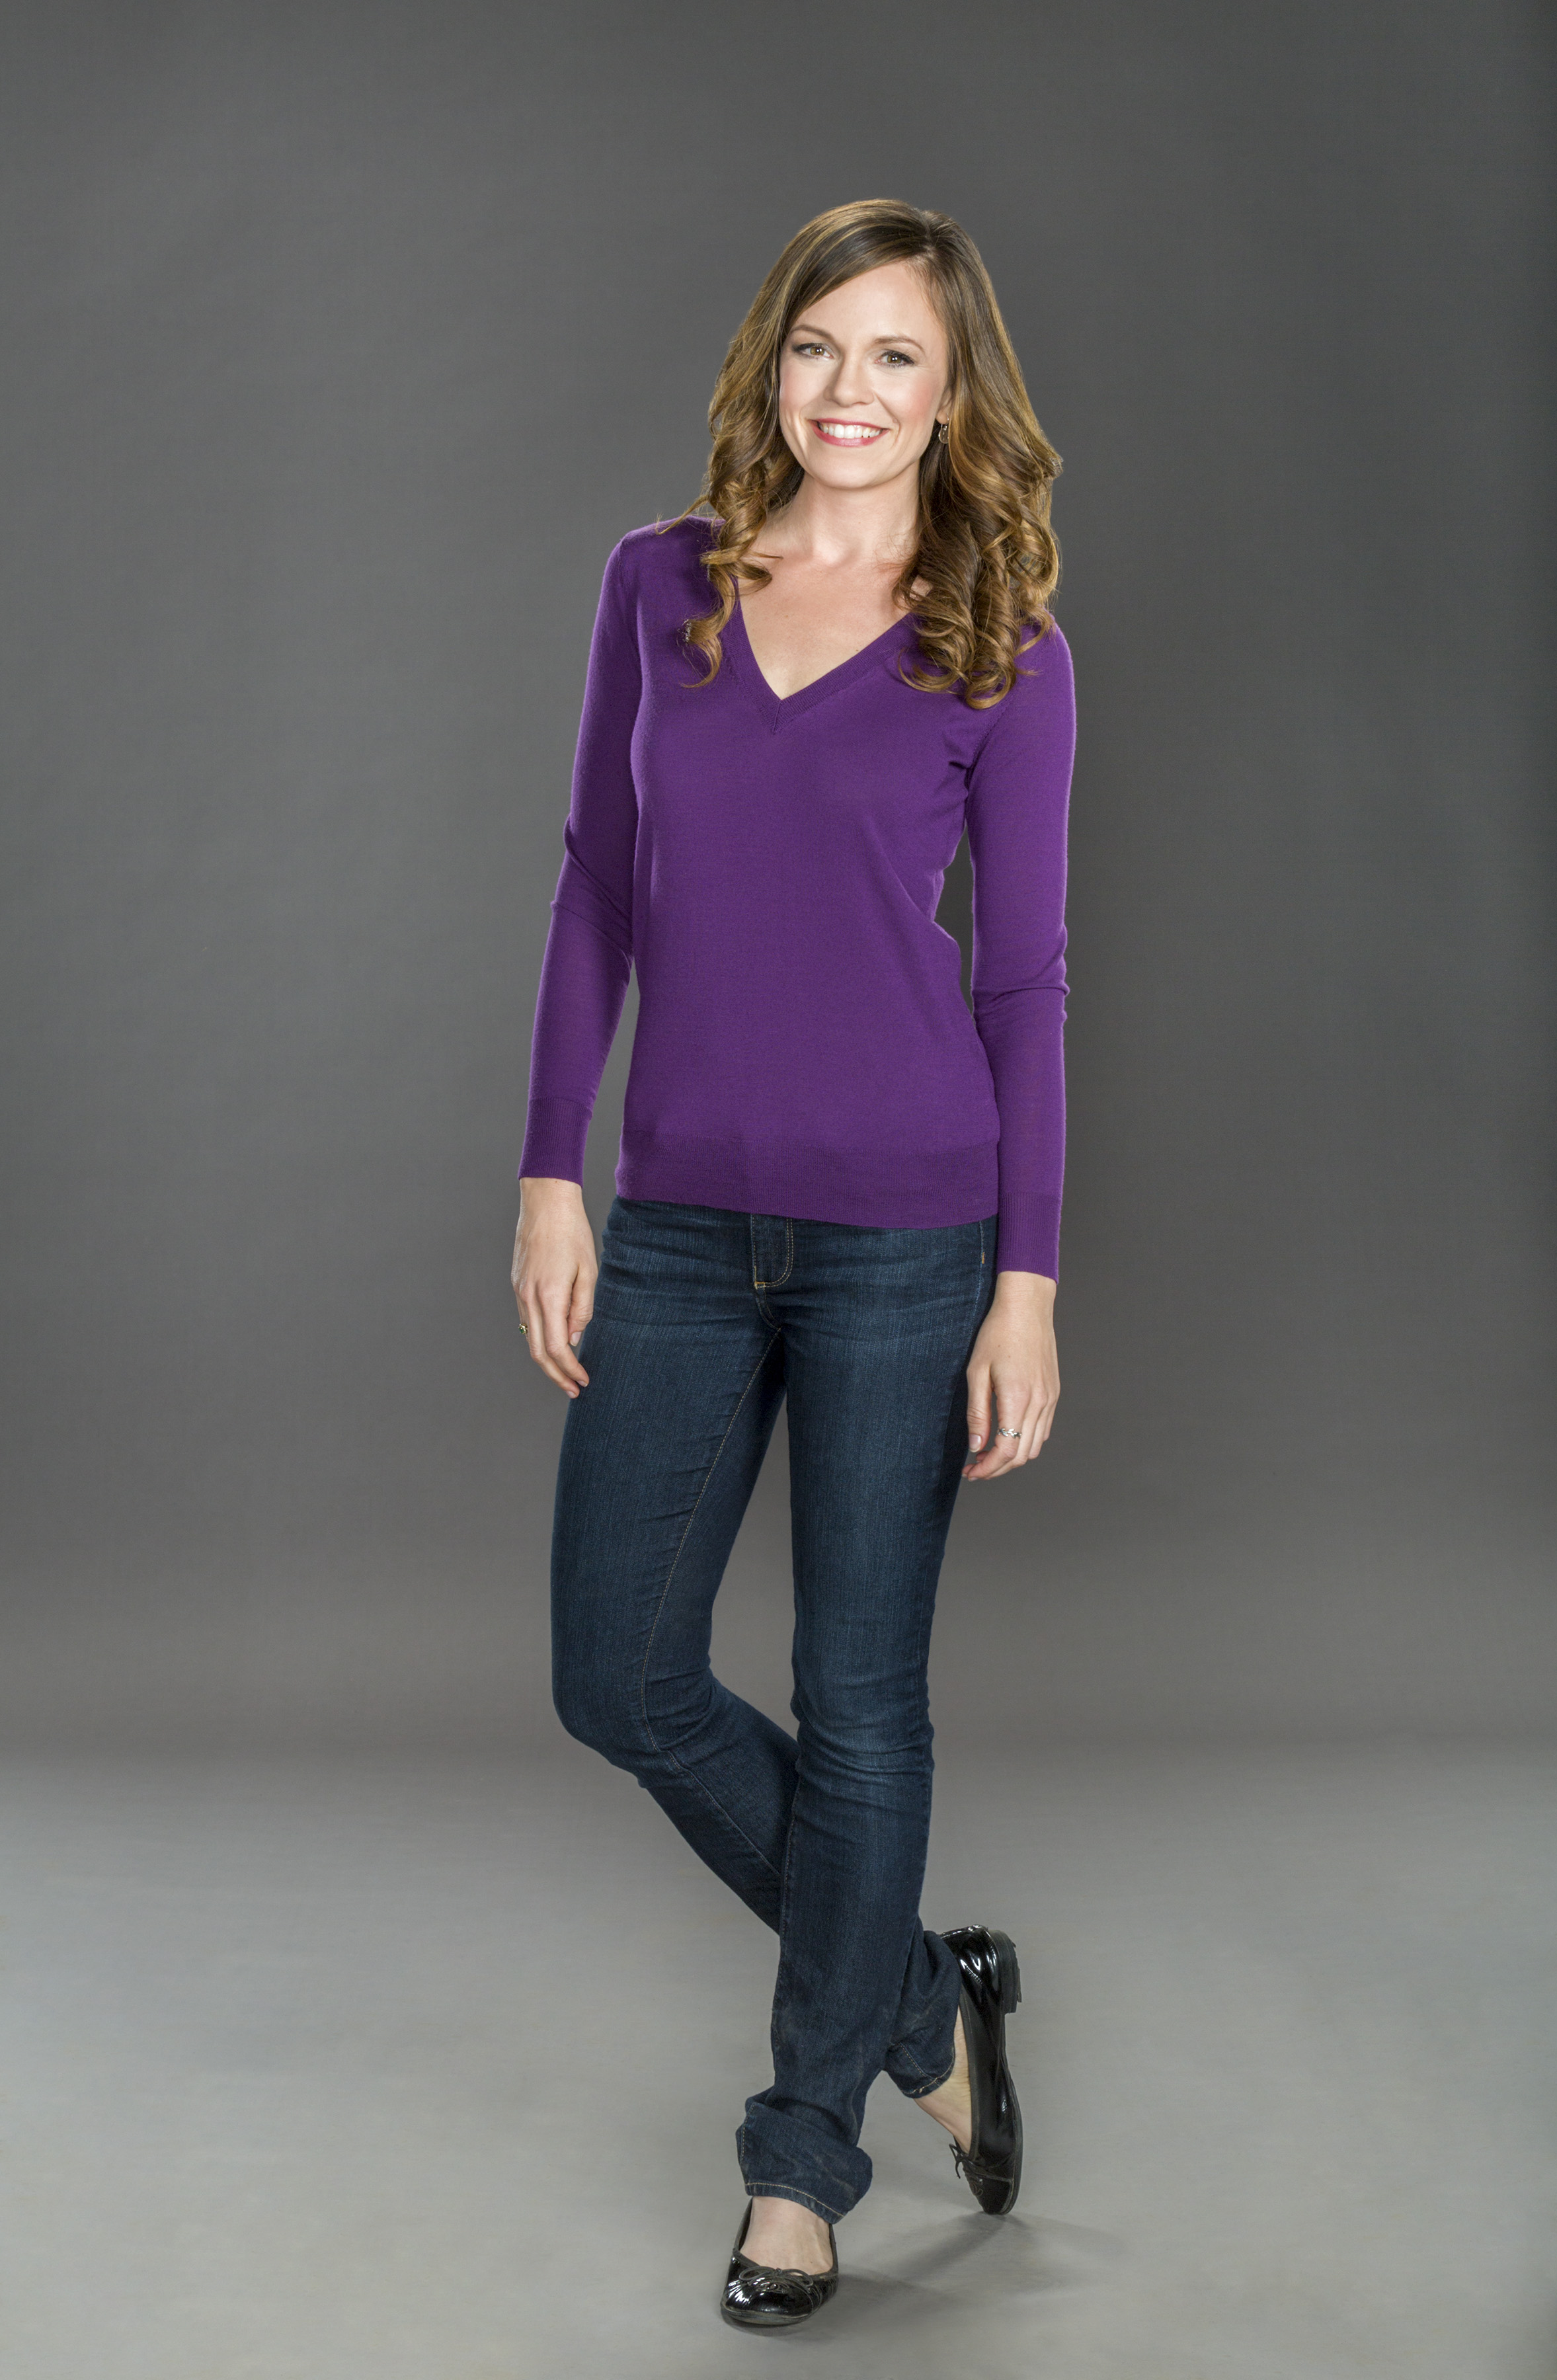 Rachel Boston As Darcy Miller In A Gift Of Miracles